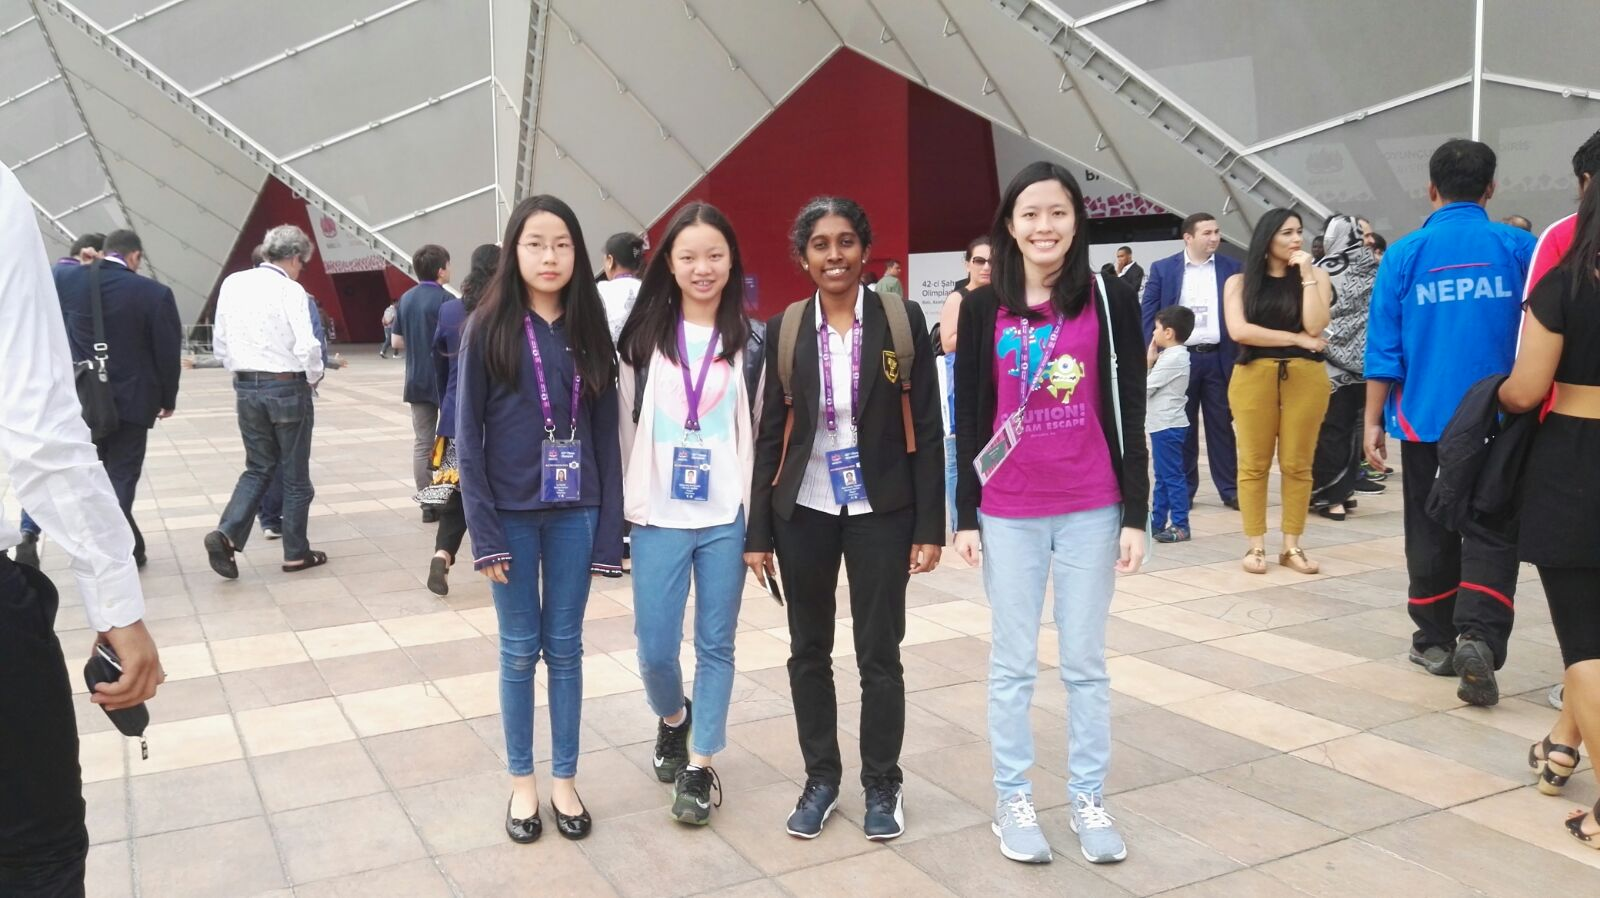 women-team-wcm-rachel-lu-wcm-crystal-deng-wfm-sigappi-kannappan-lok-yi-lee-left-to-right